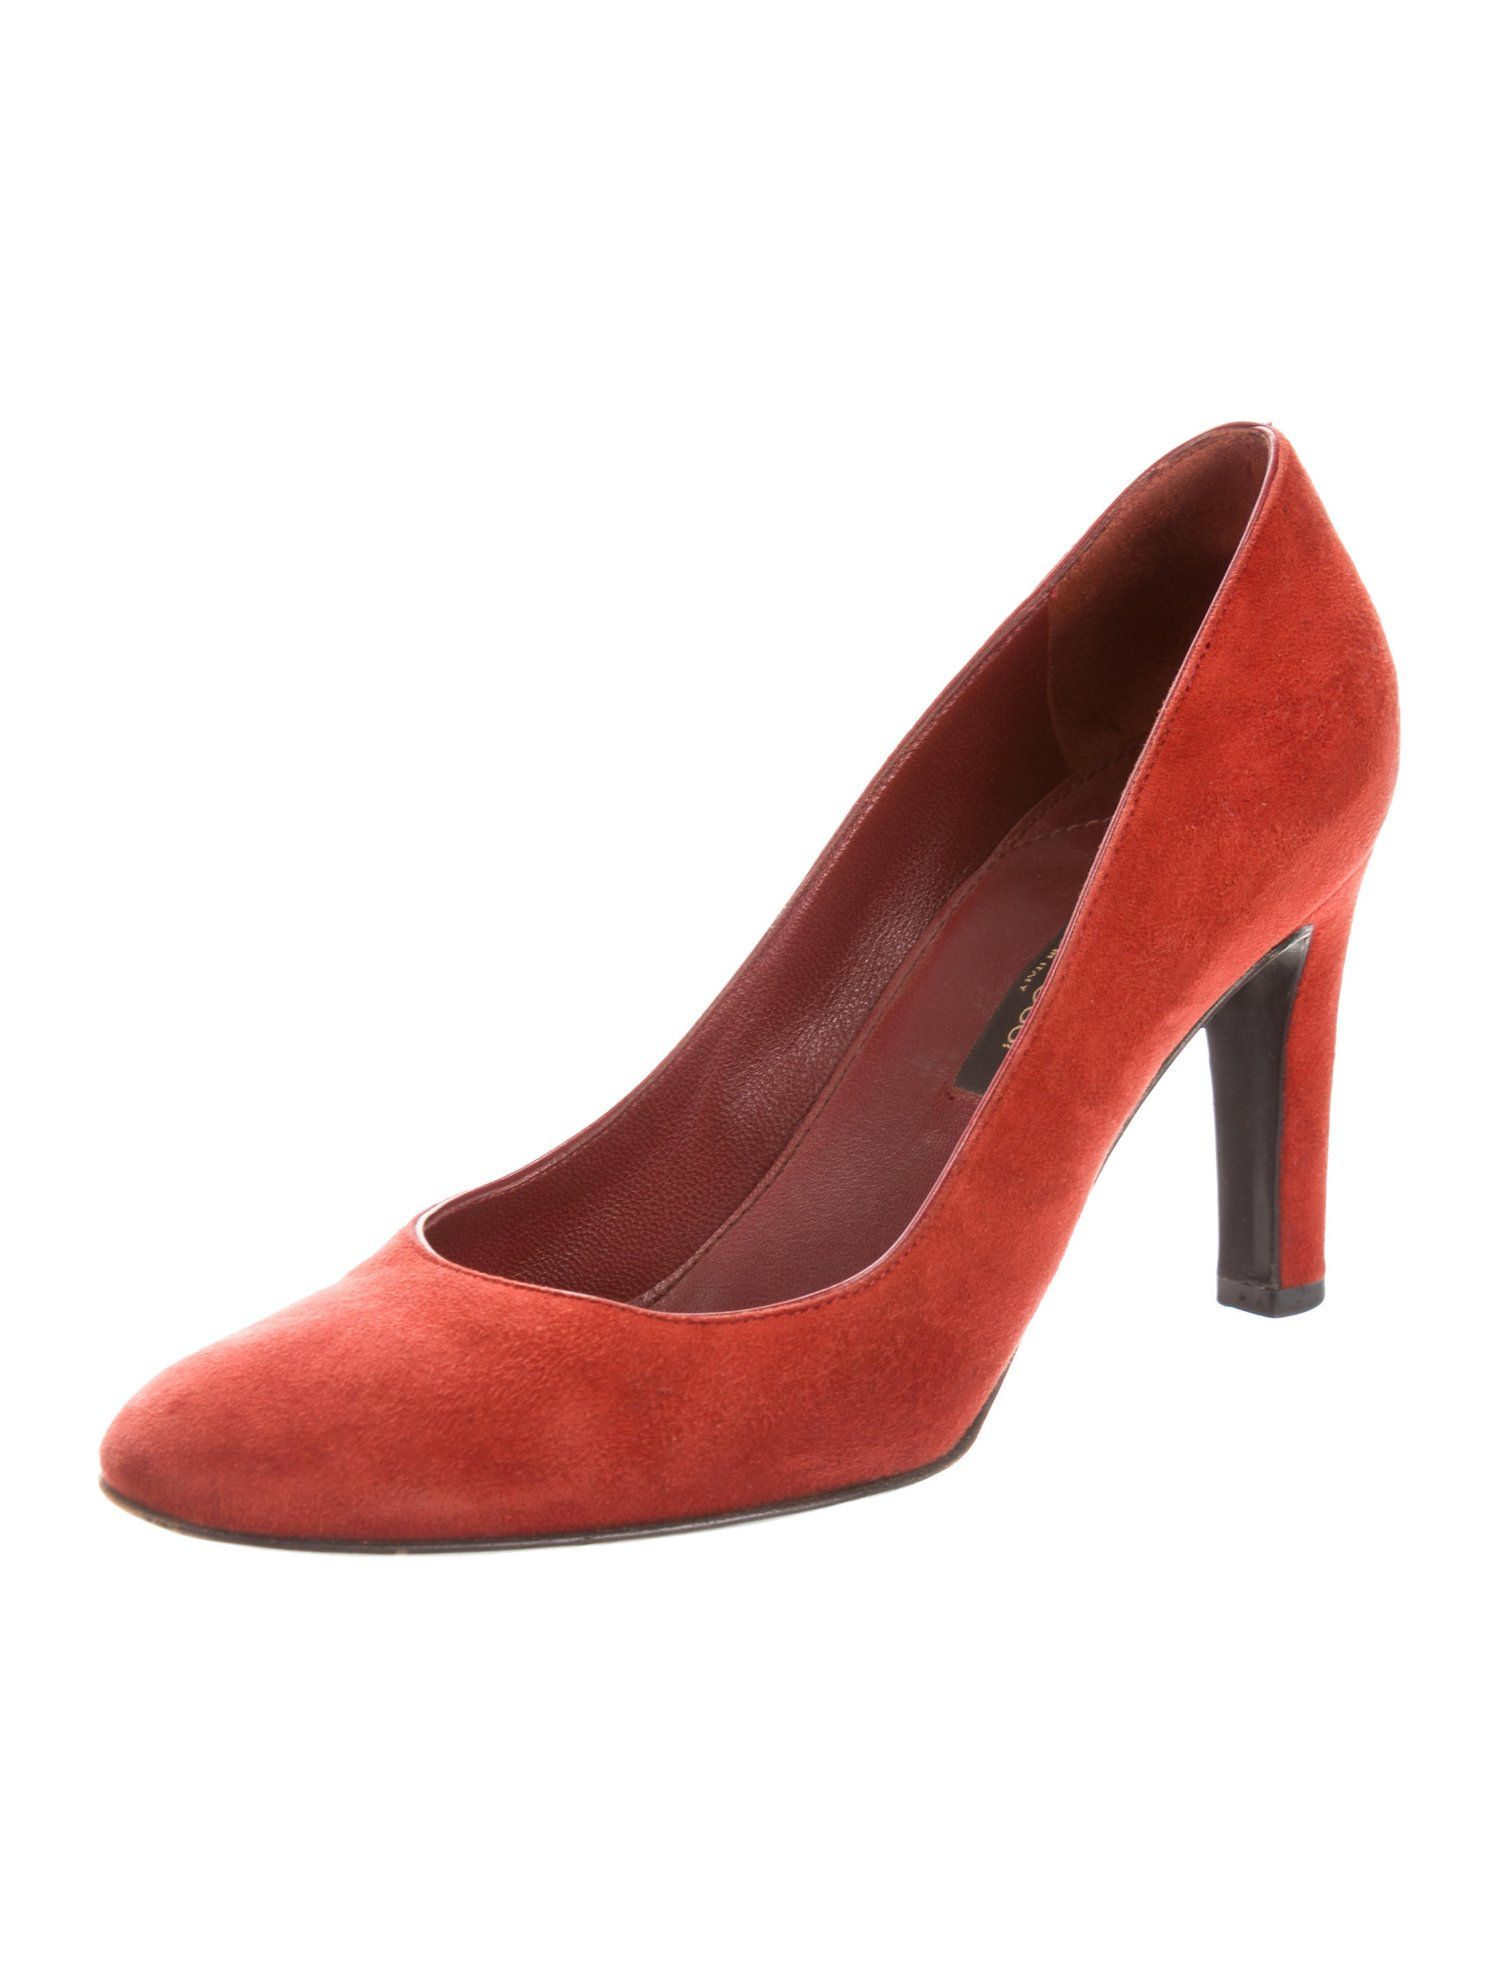 7cabac172313 Sergio Rossi Suede Round-Toe Pumps - Shoes - SER32999